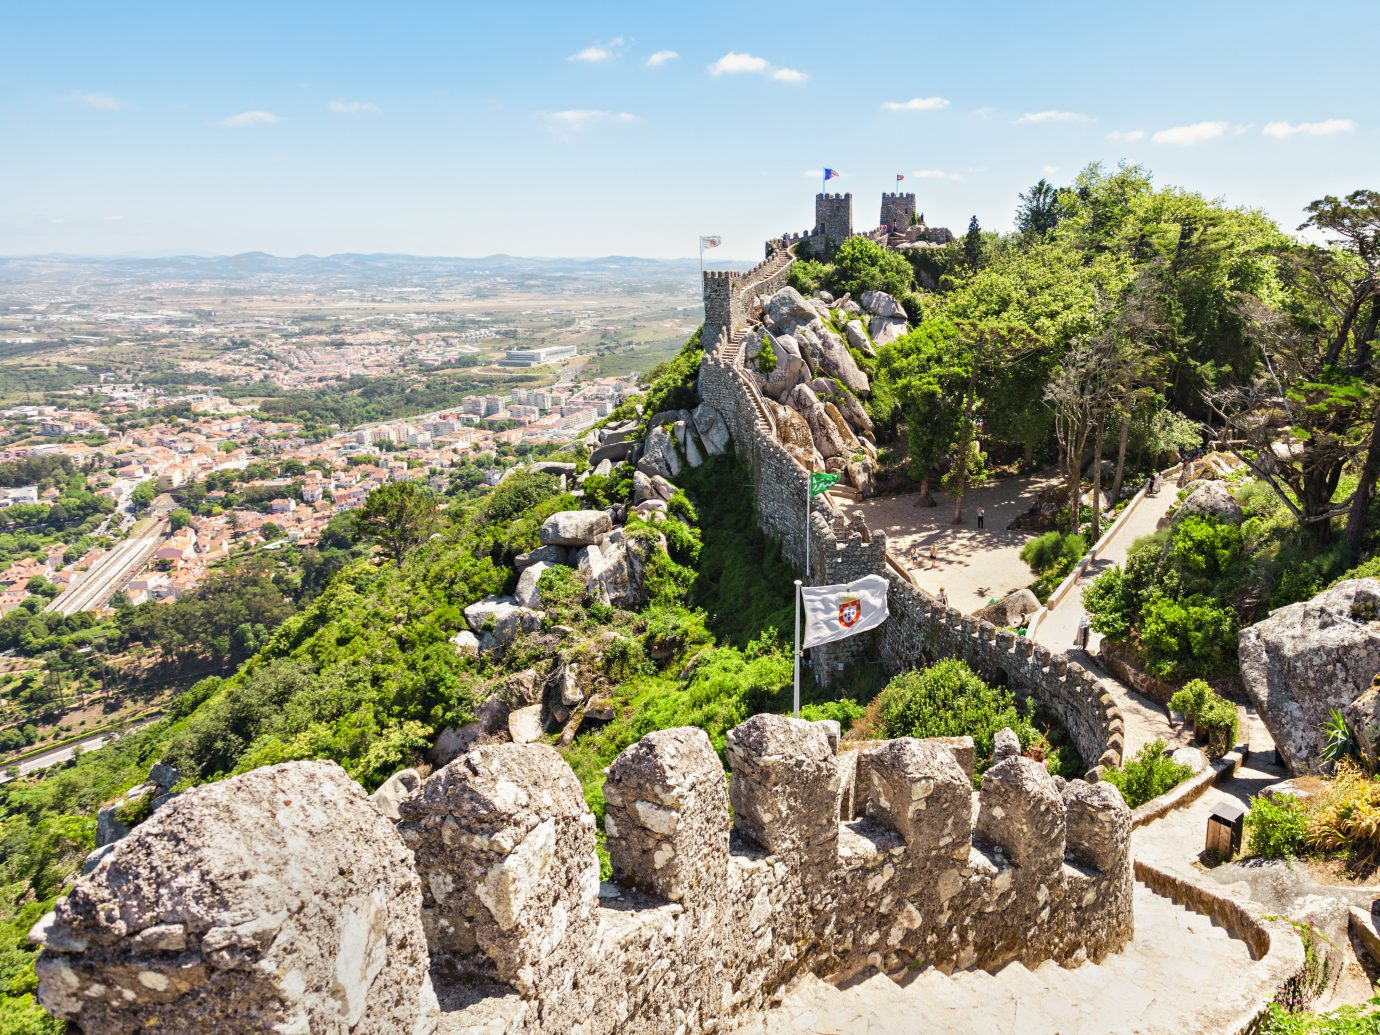 The Castle of the Moors is a hilltop medieval castle in Sintra, Portugal